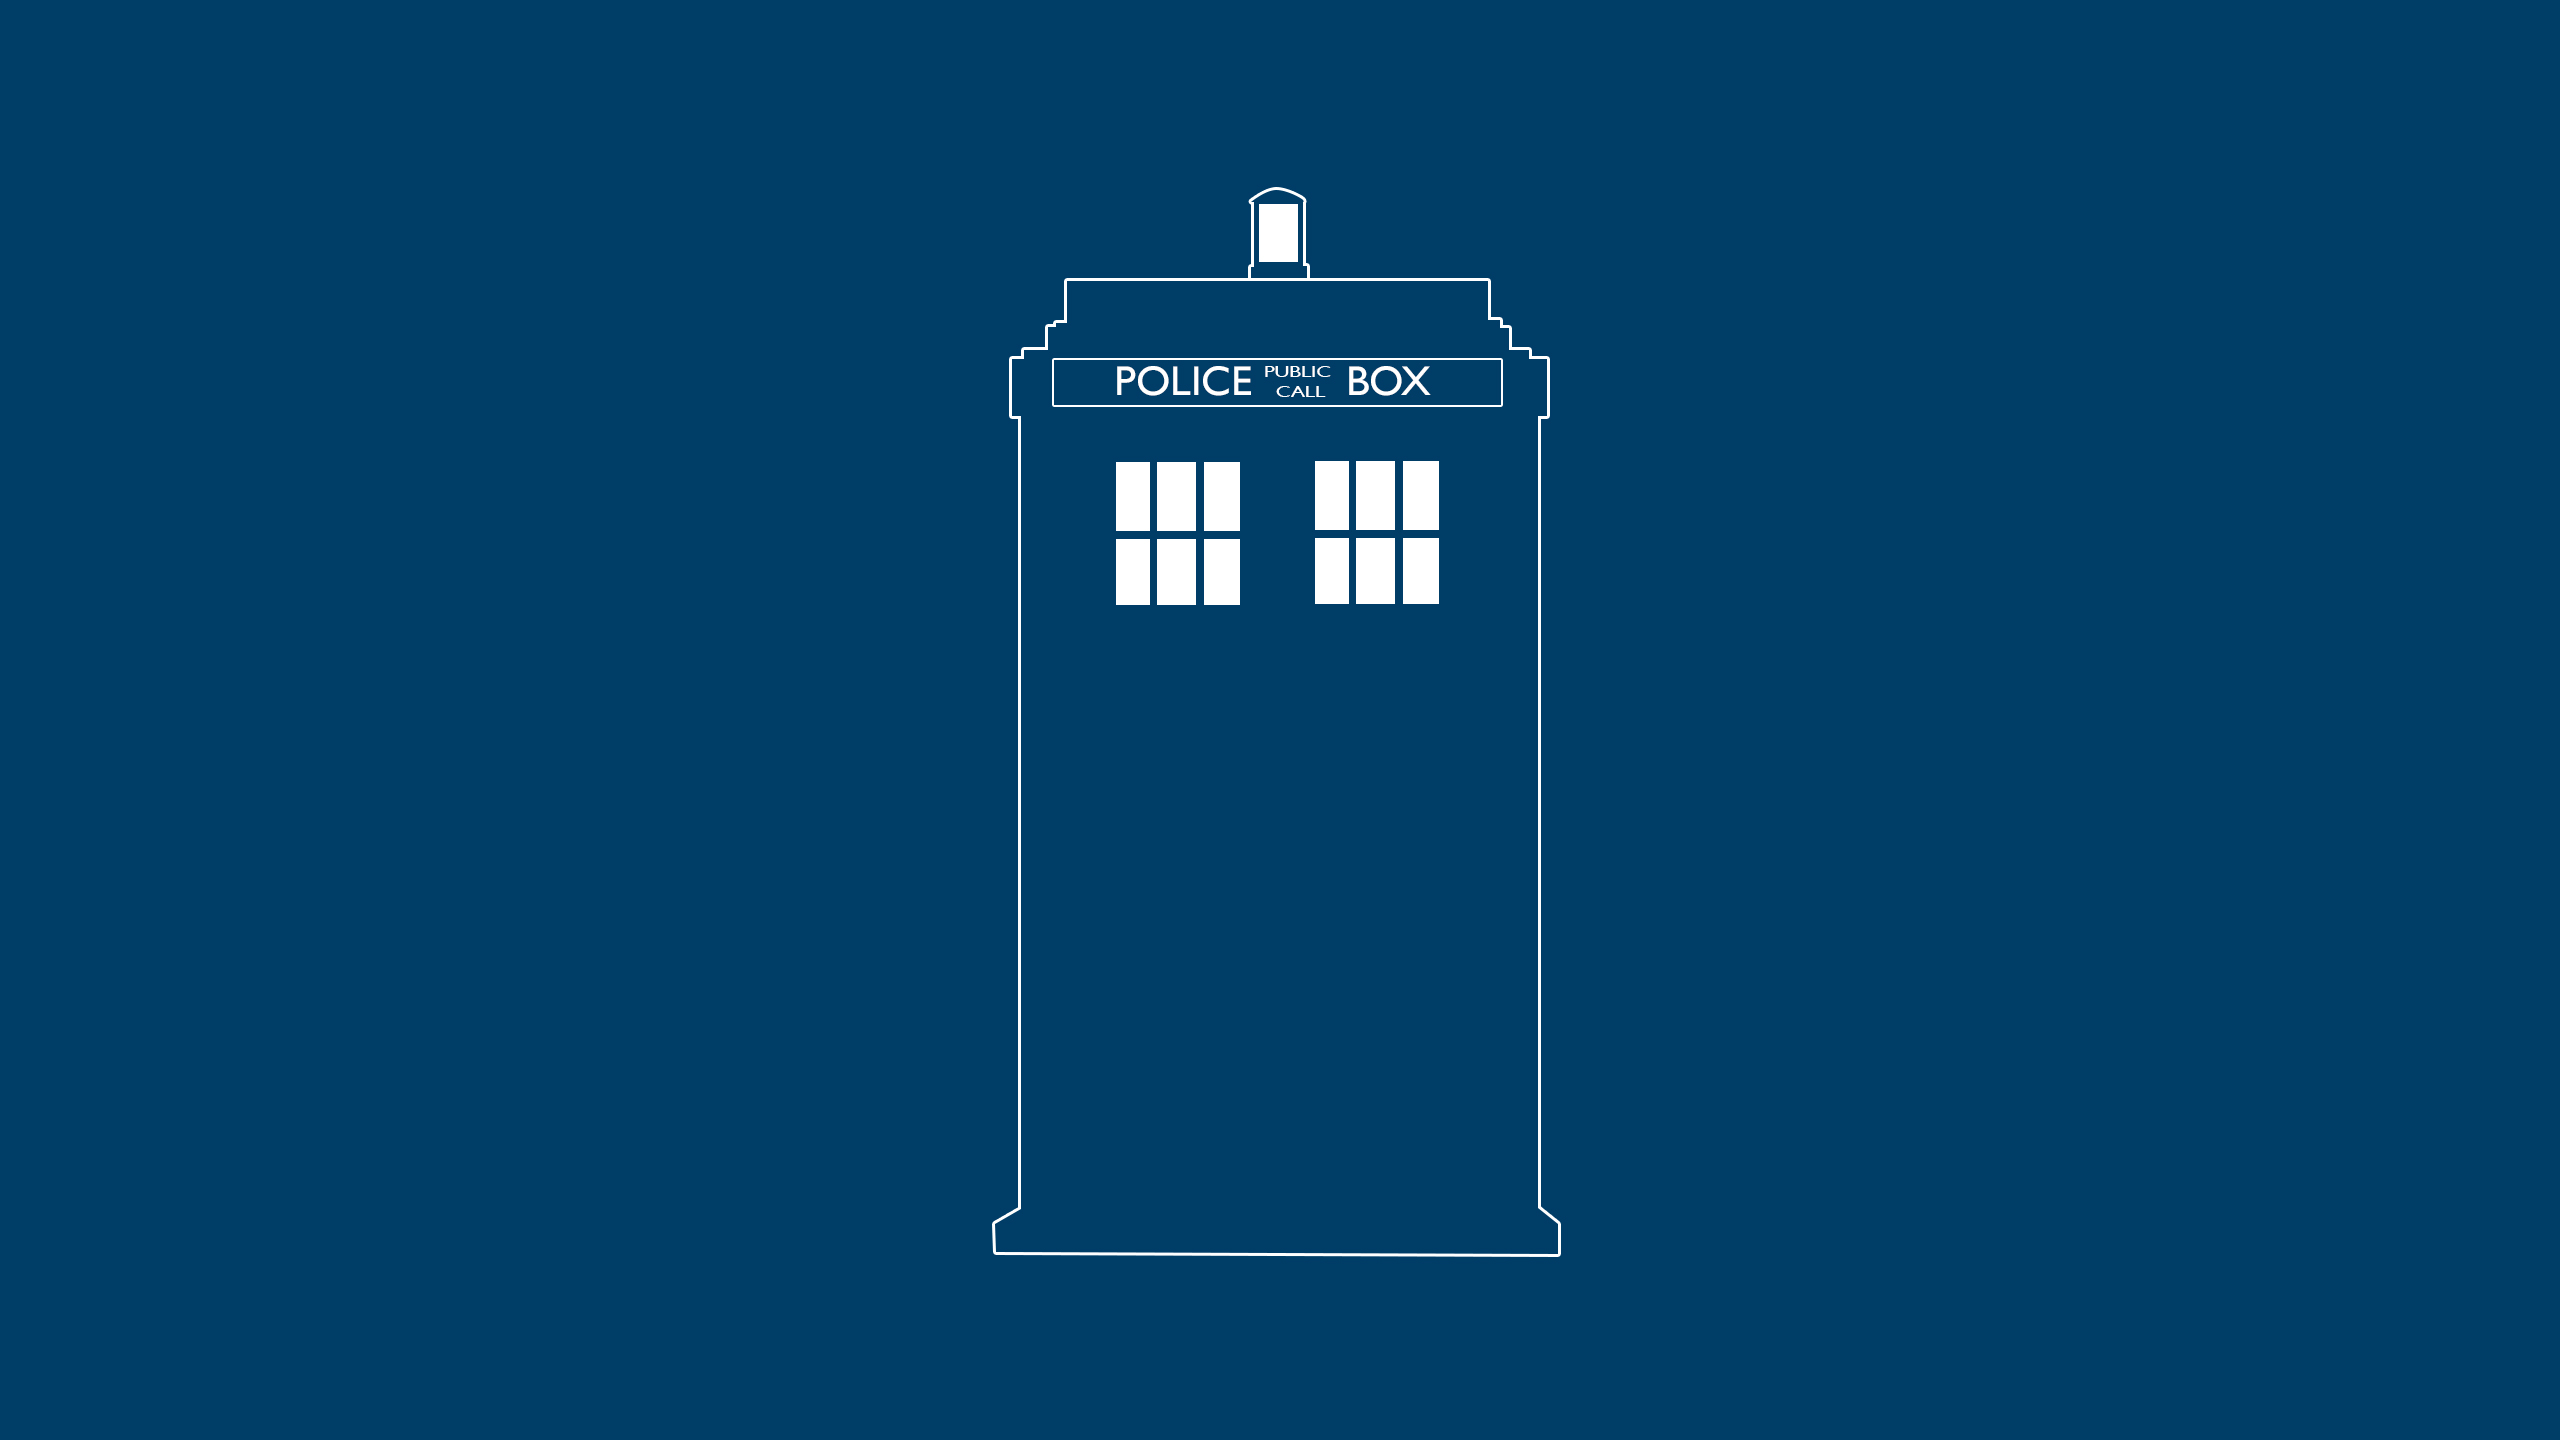 Tardis wallpaper by nexxtcze on deviantart for Minimal art reddit